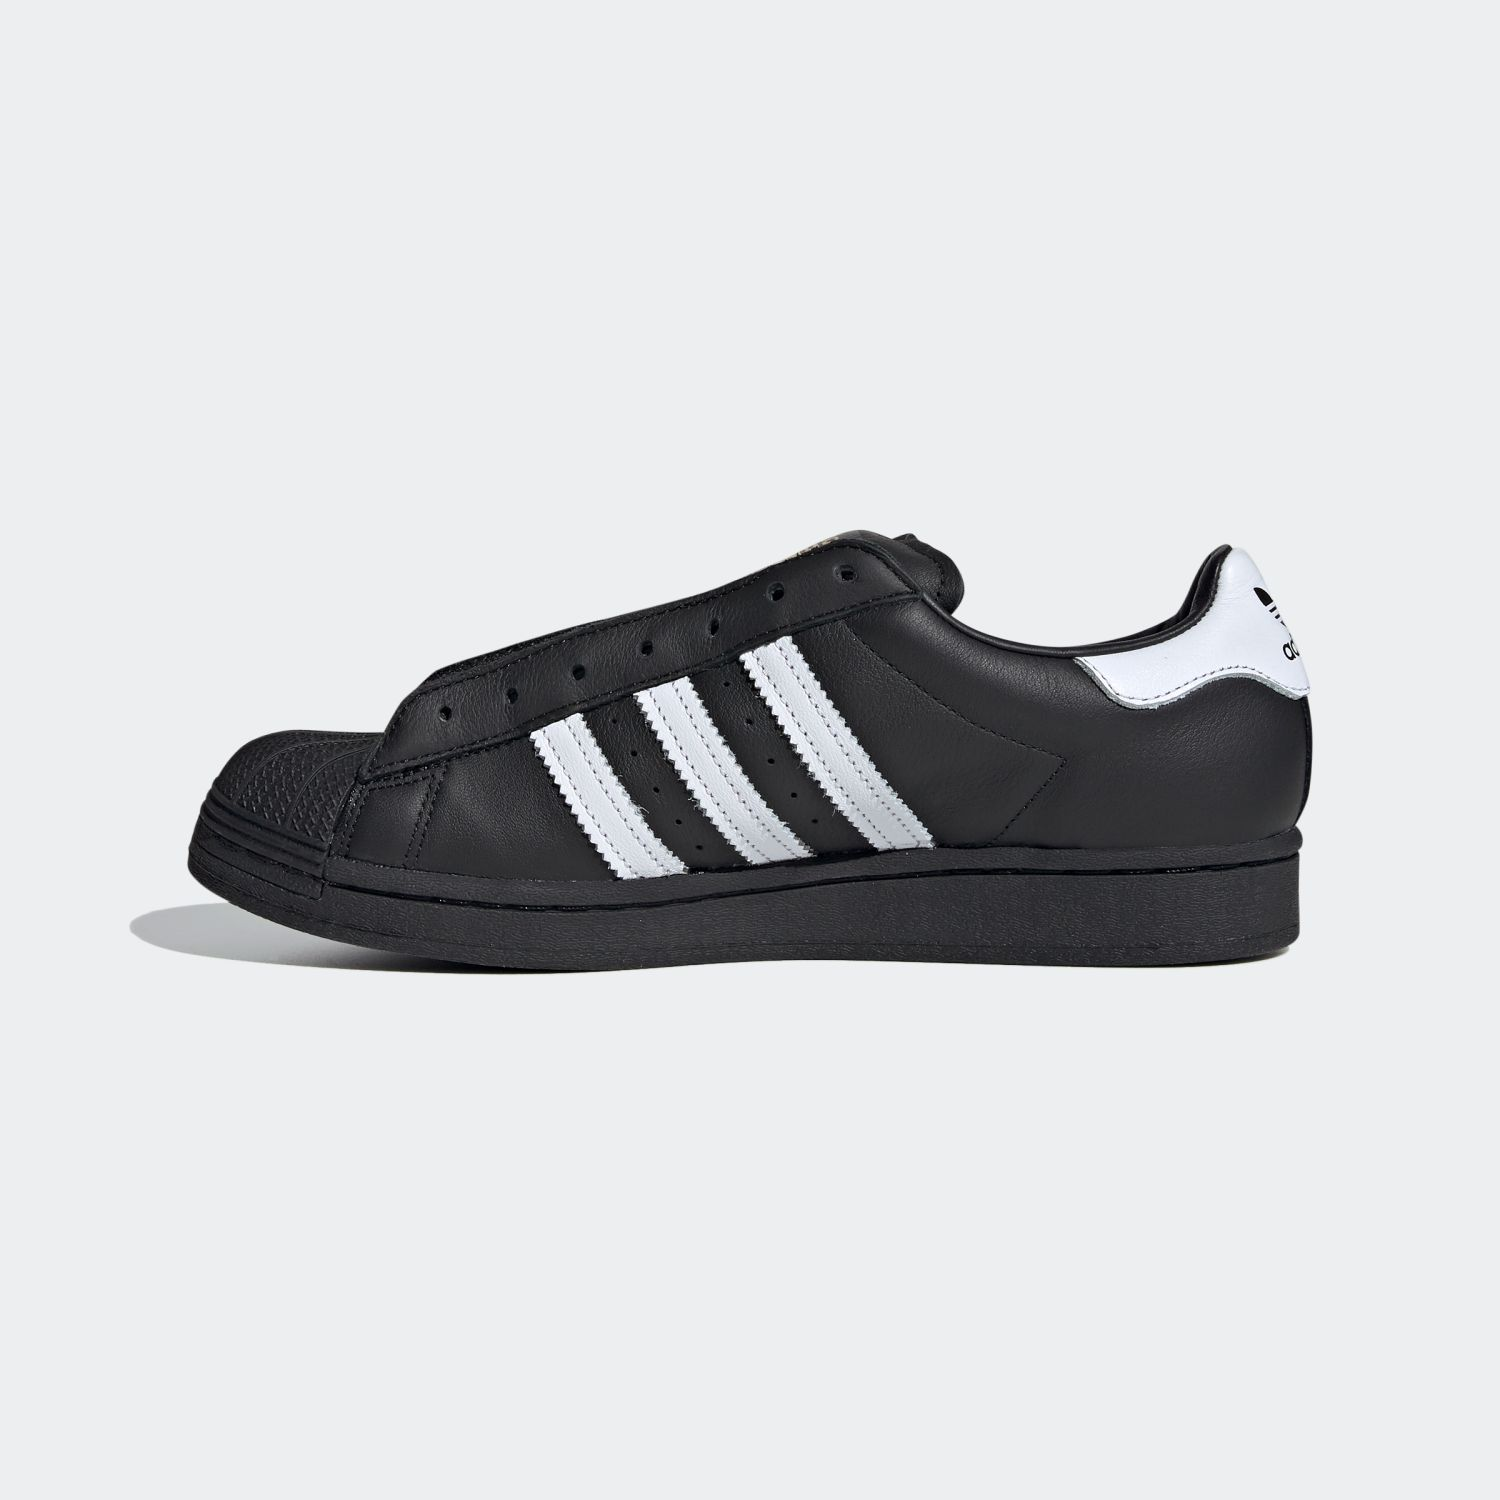 SUPERSTAR x Adidas Laceless Black White [2]